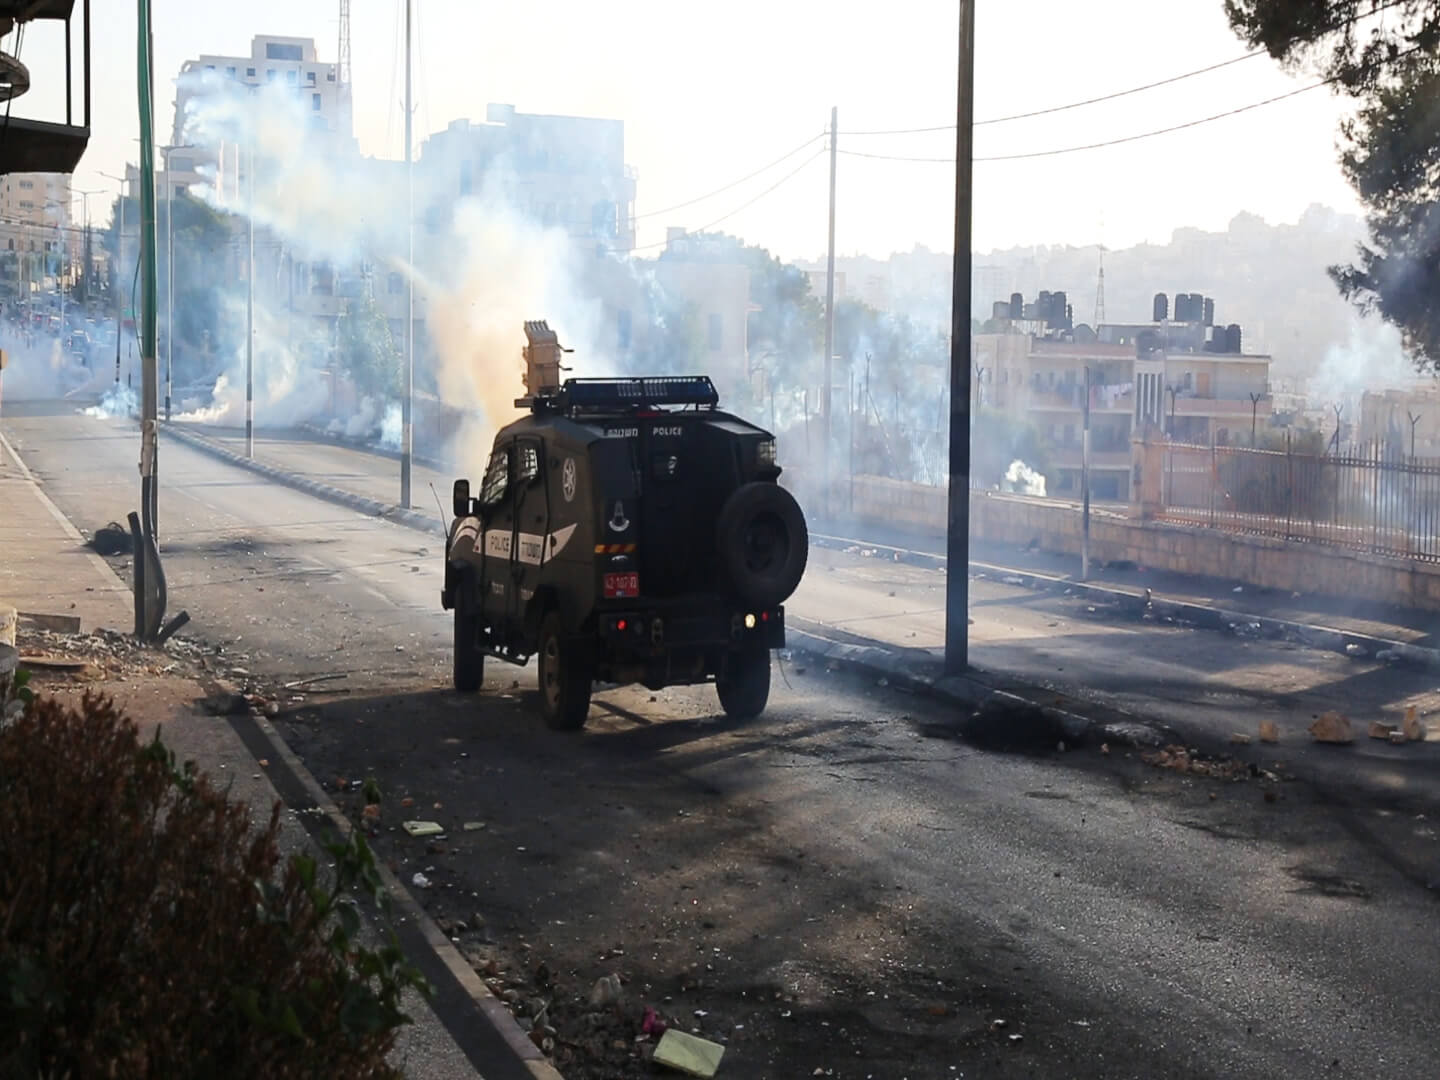 Israeli army jeeps have the capability of shooting off up to 60 tear gas canisters at once without reloading. (Photo: Abed al Qaisi)